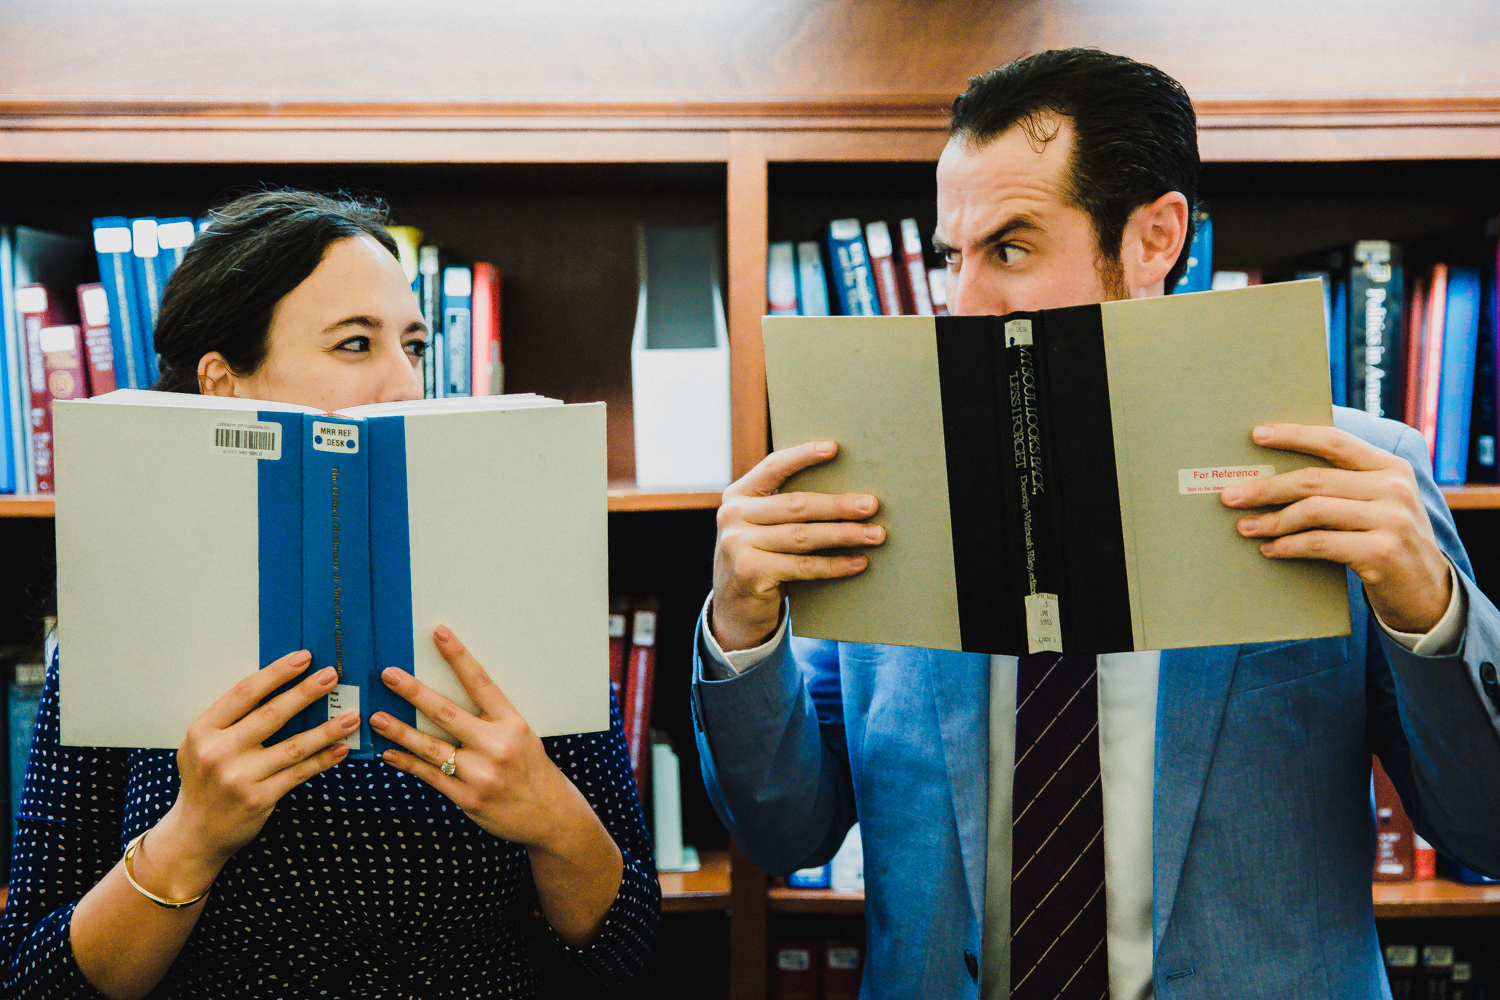 Couple holding books, Library of Congress Engagement Session